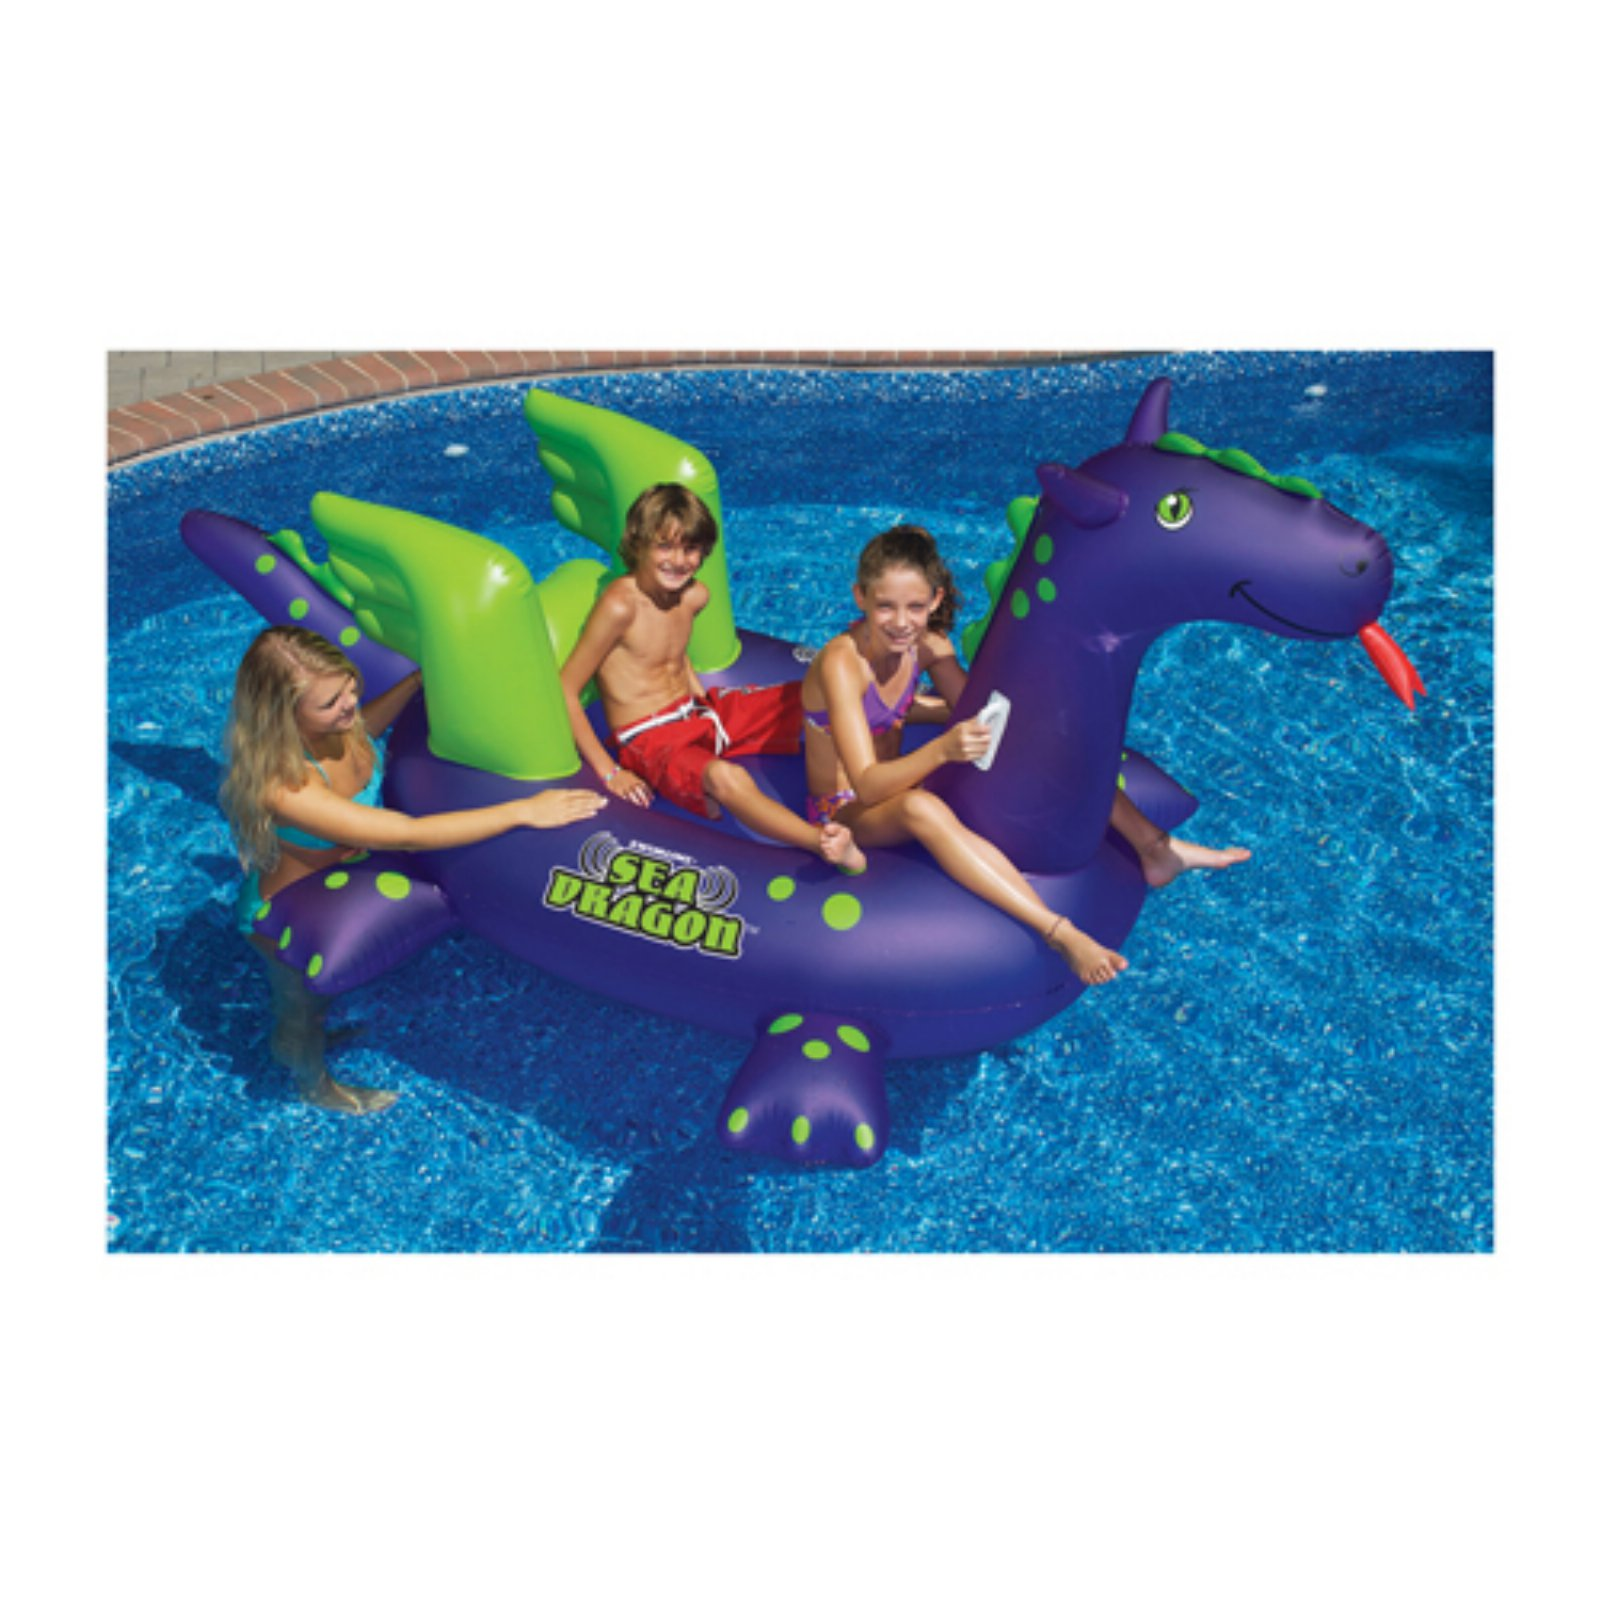 Giant Sea Dragon Inflatable Pool Toy by INTERNATIONAL LEISURE PRODUCTS